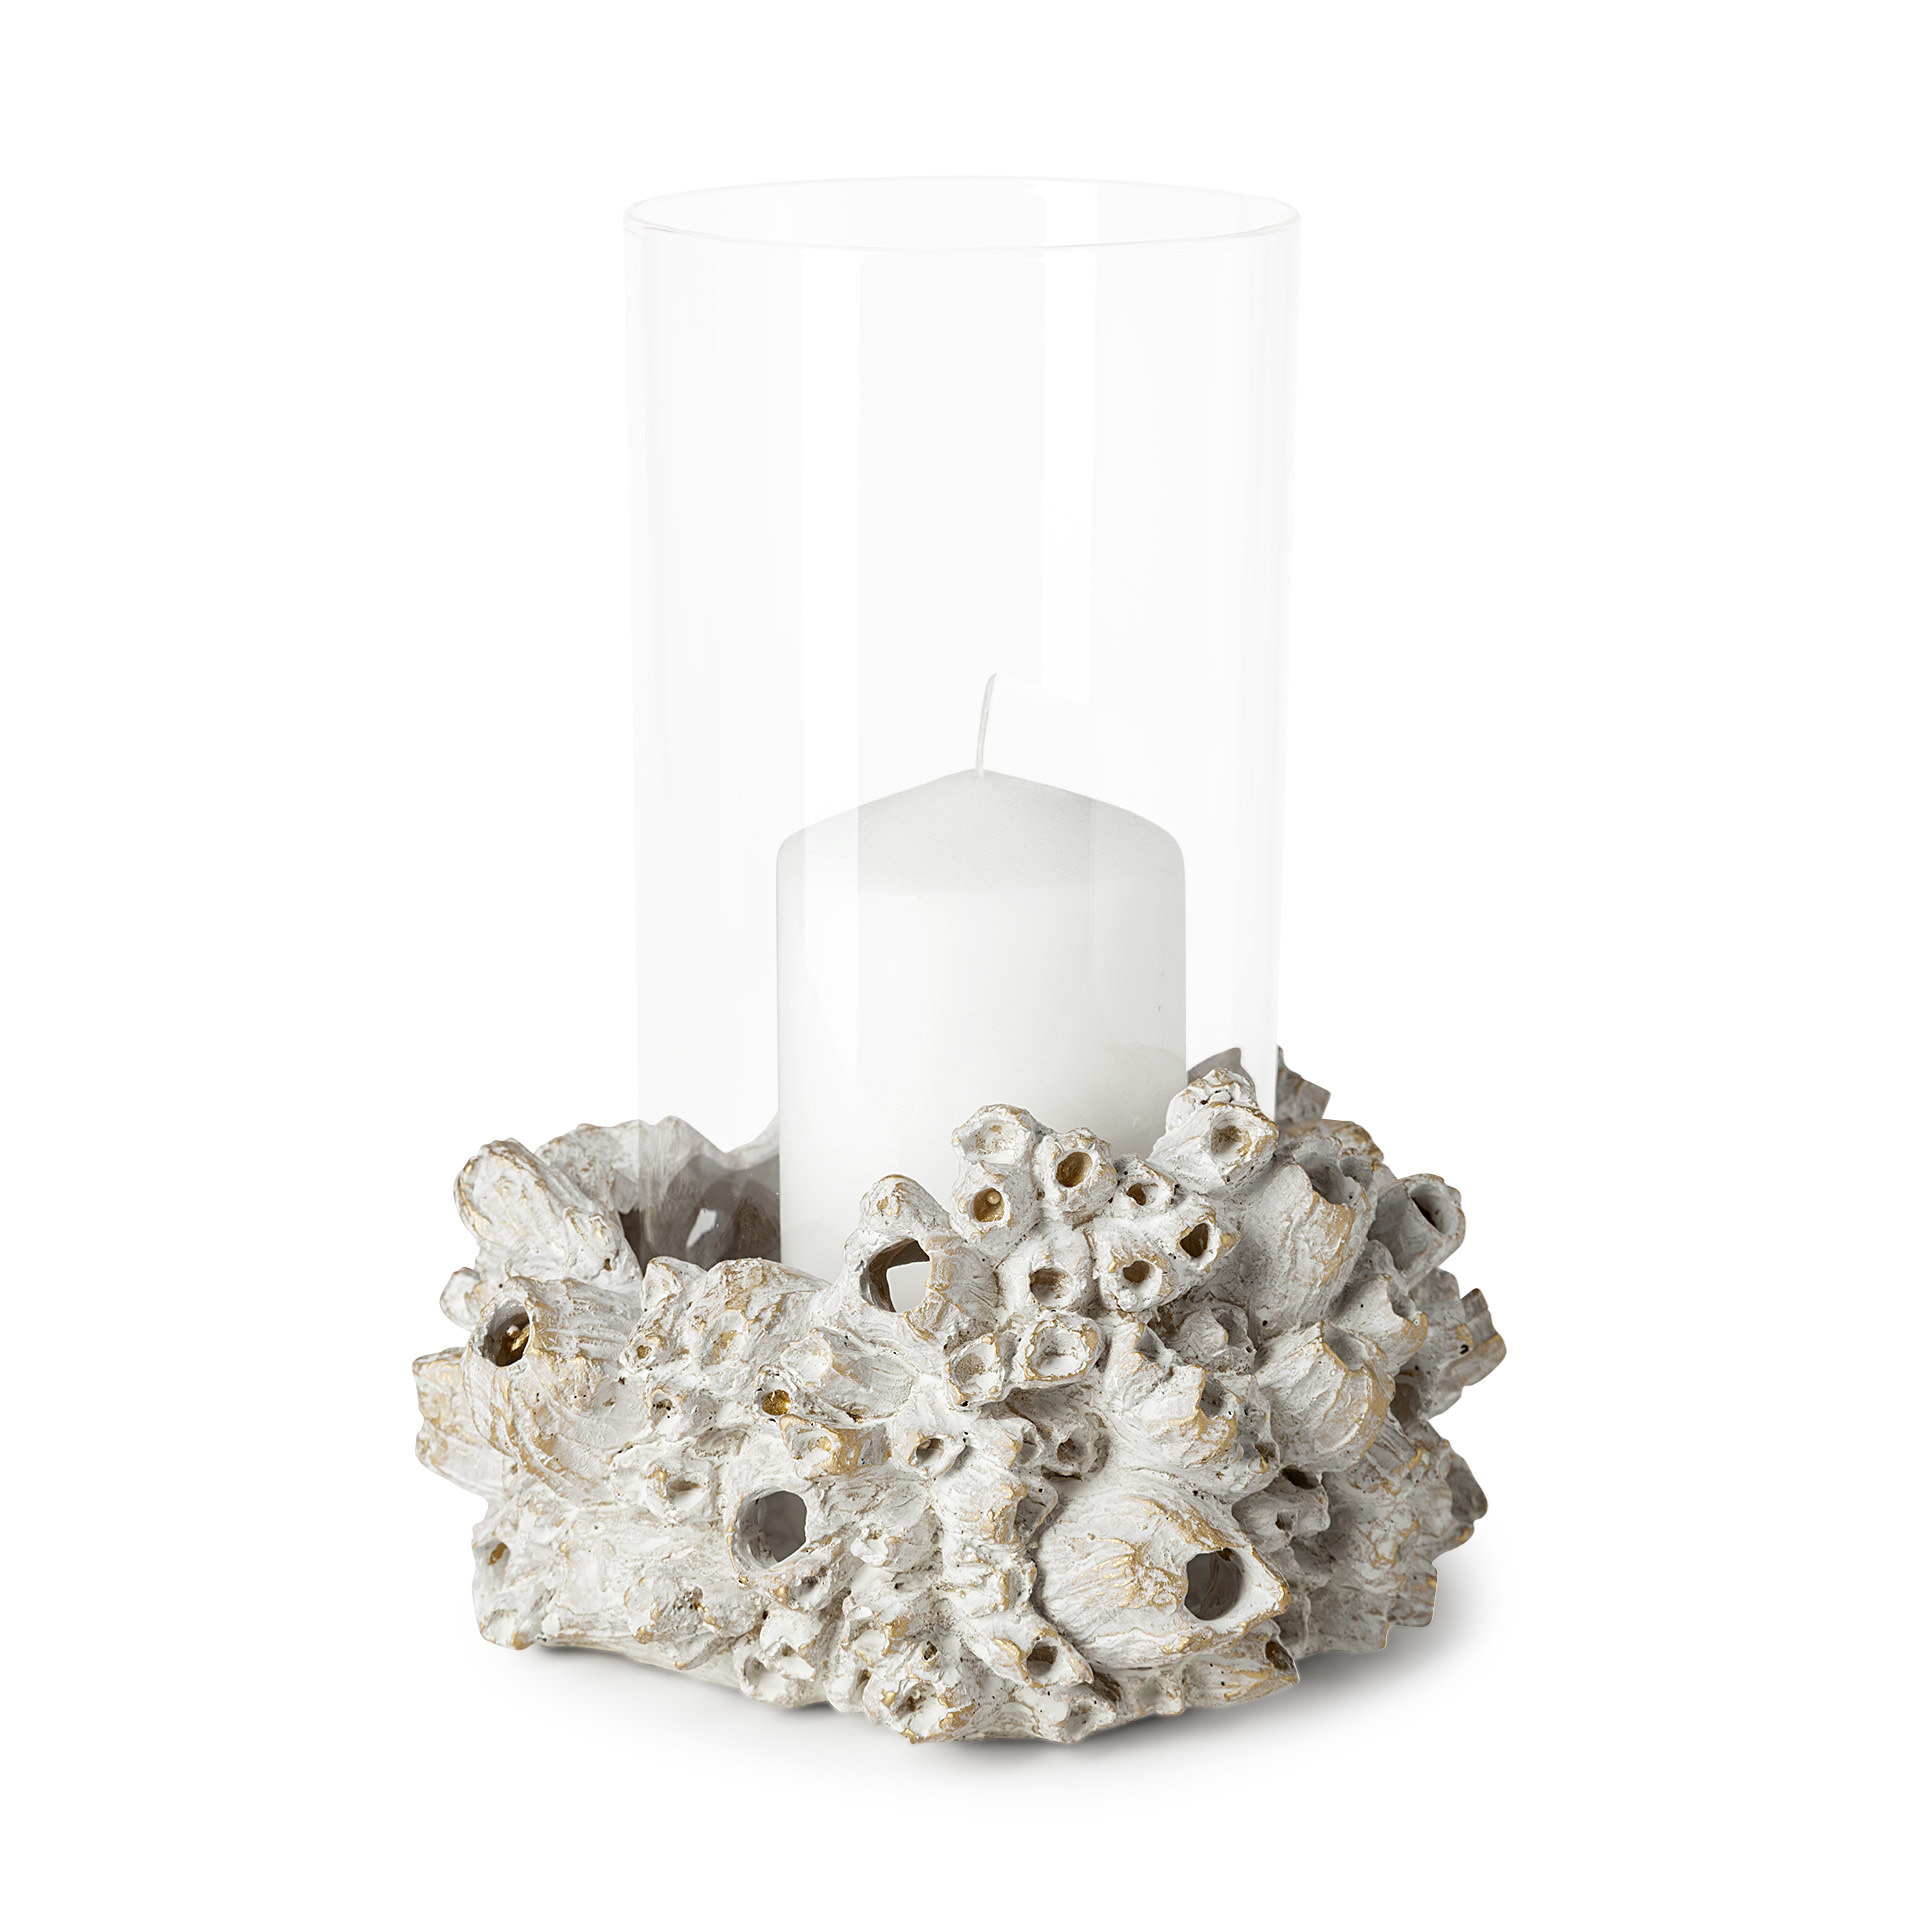 Marjorie Table Candle Holder